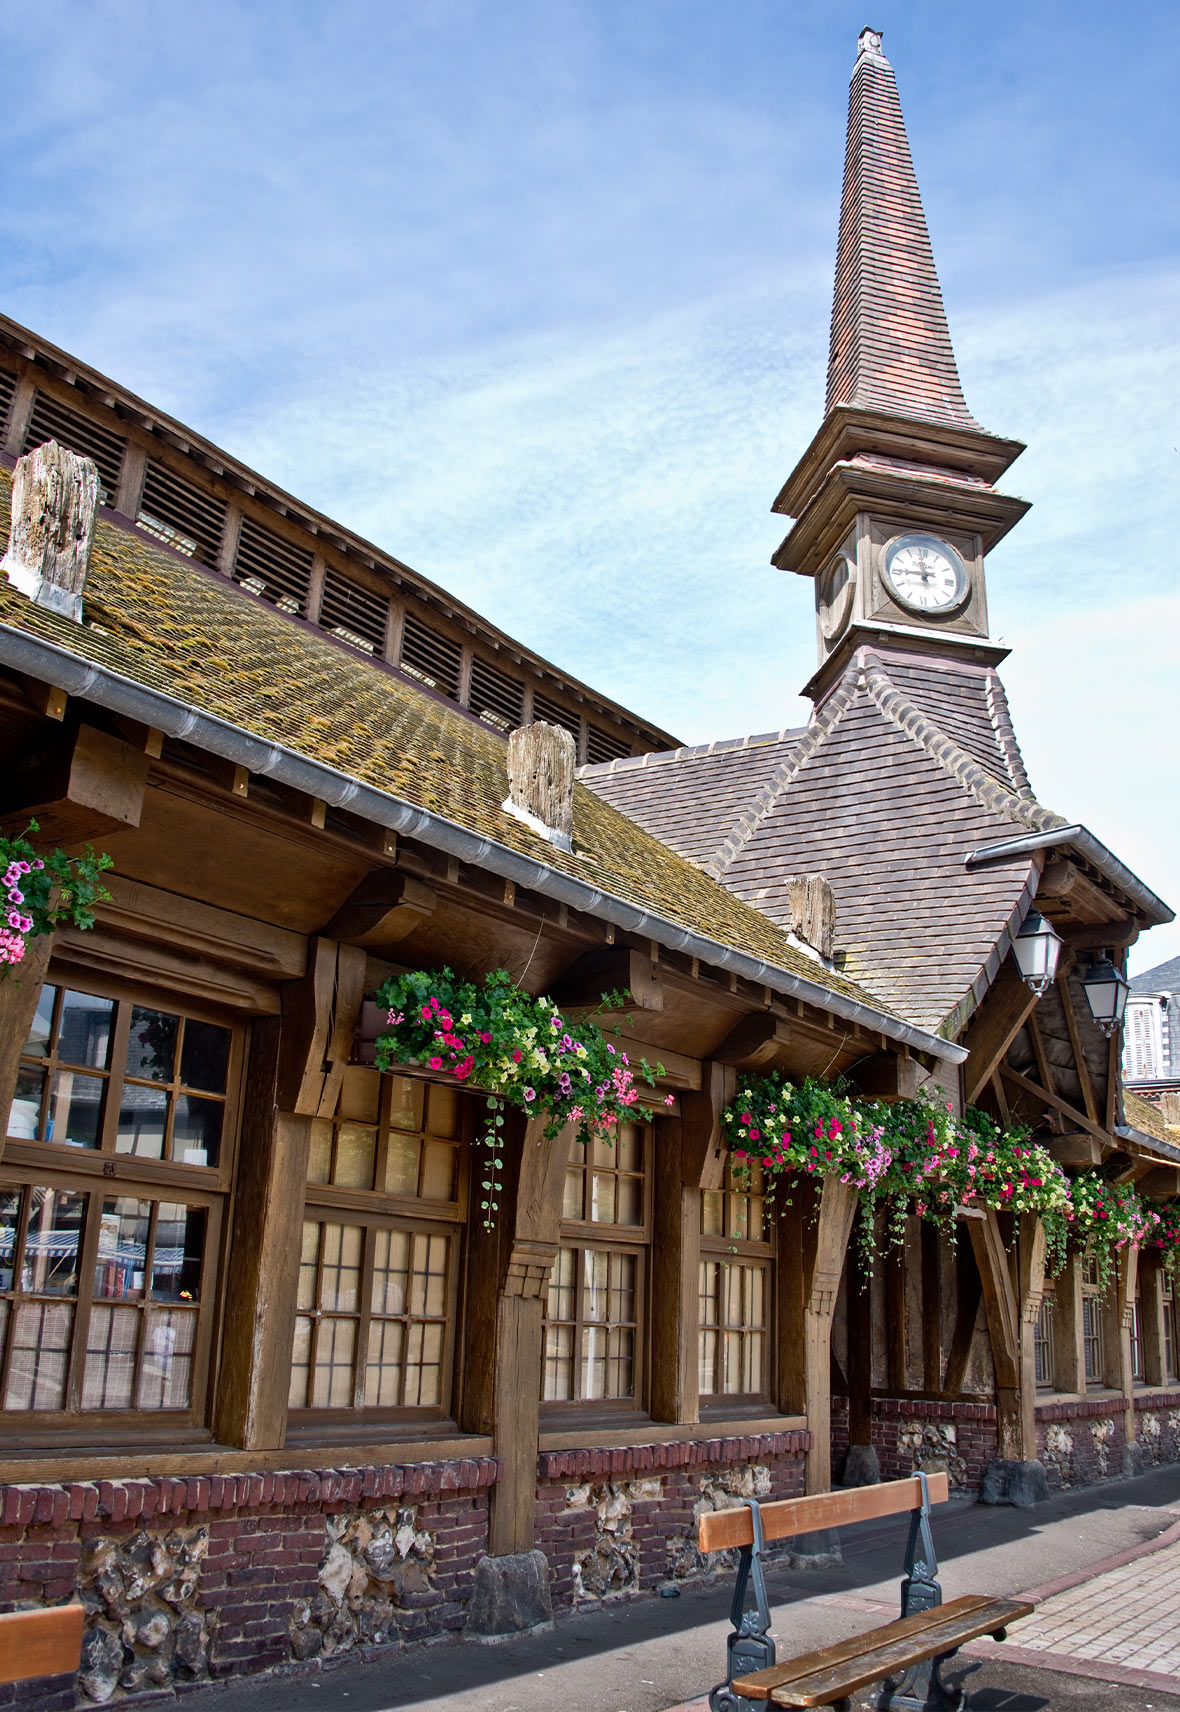 Old covered market building Etretat with clock tower and hanging floral baskets in the windows